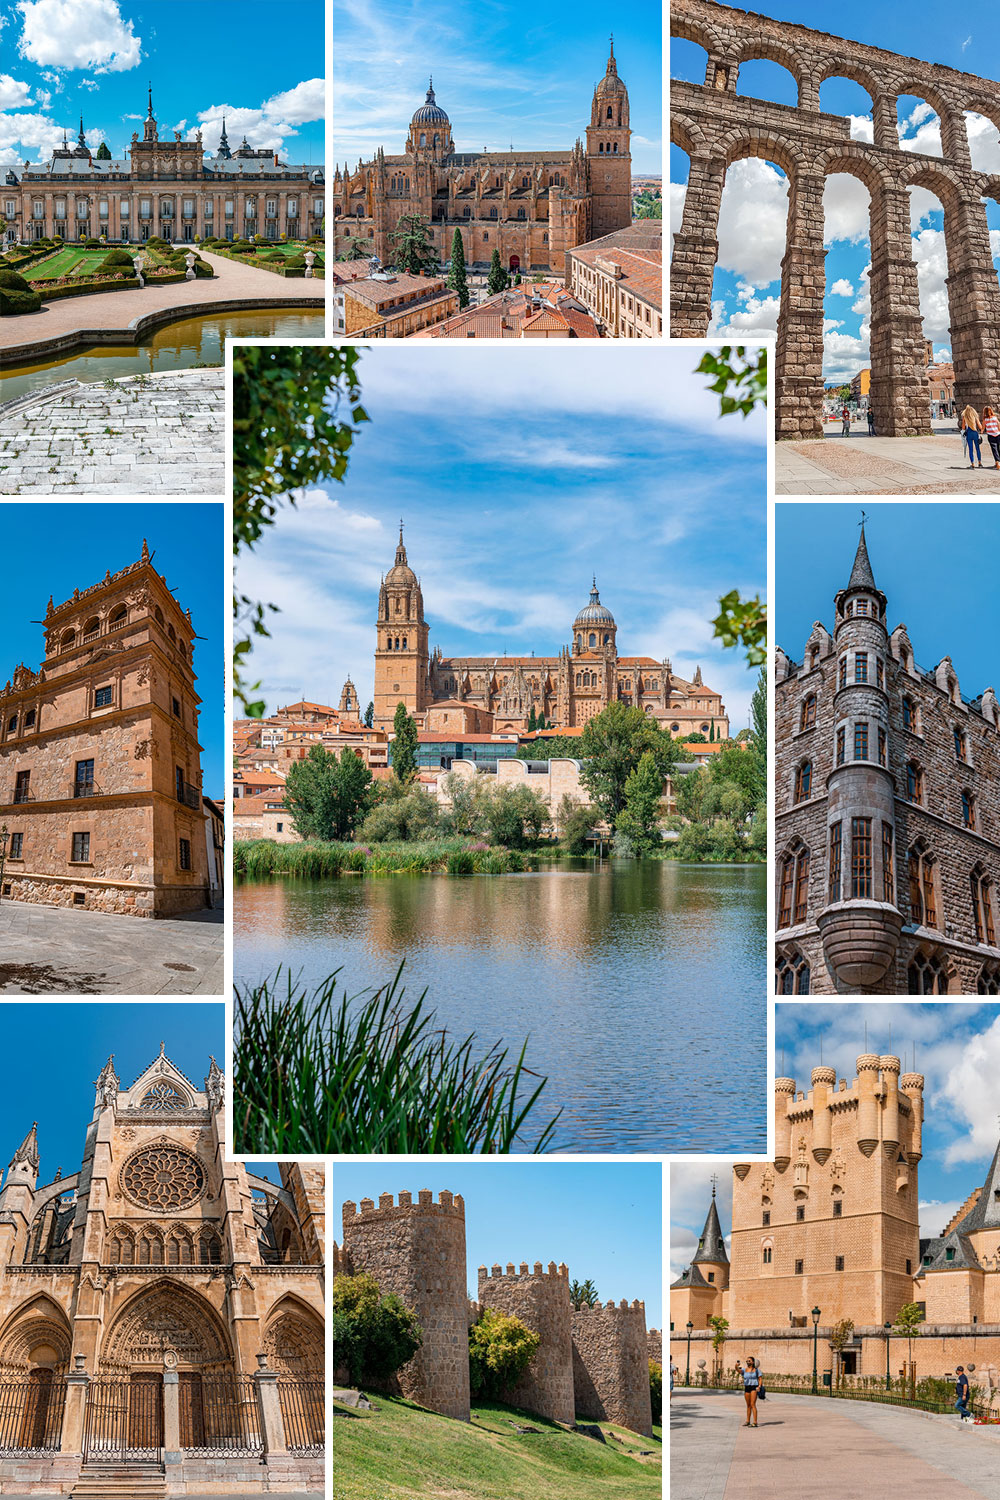 Epic places to visit in Castile and Leon, Spain